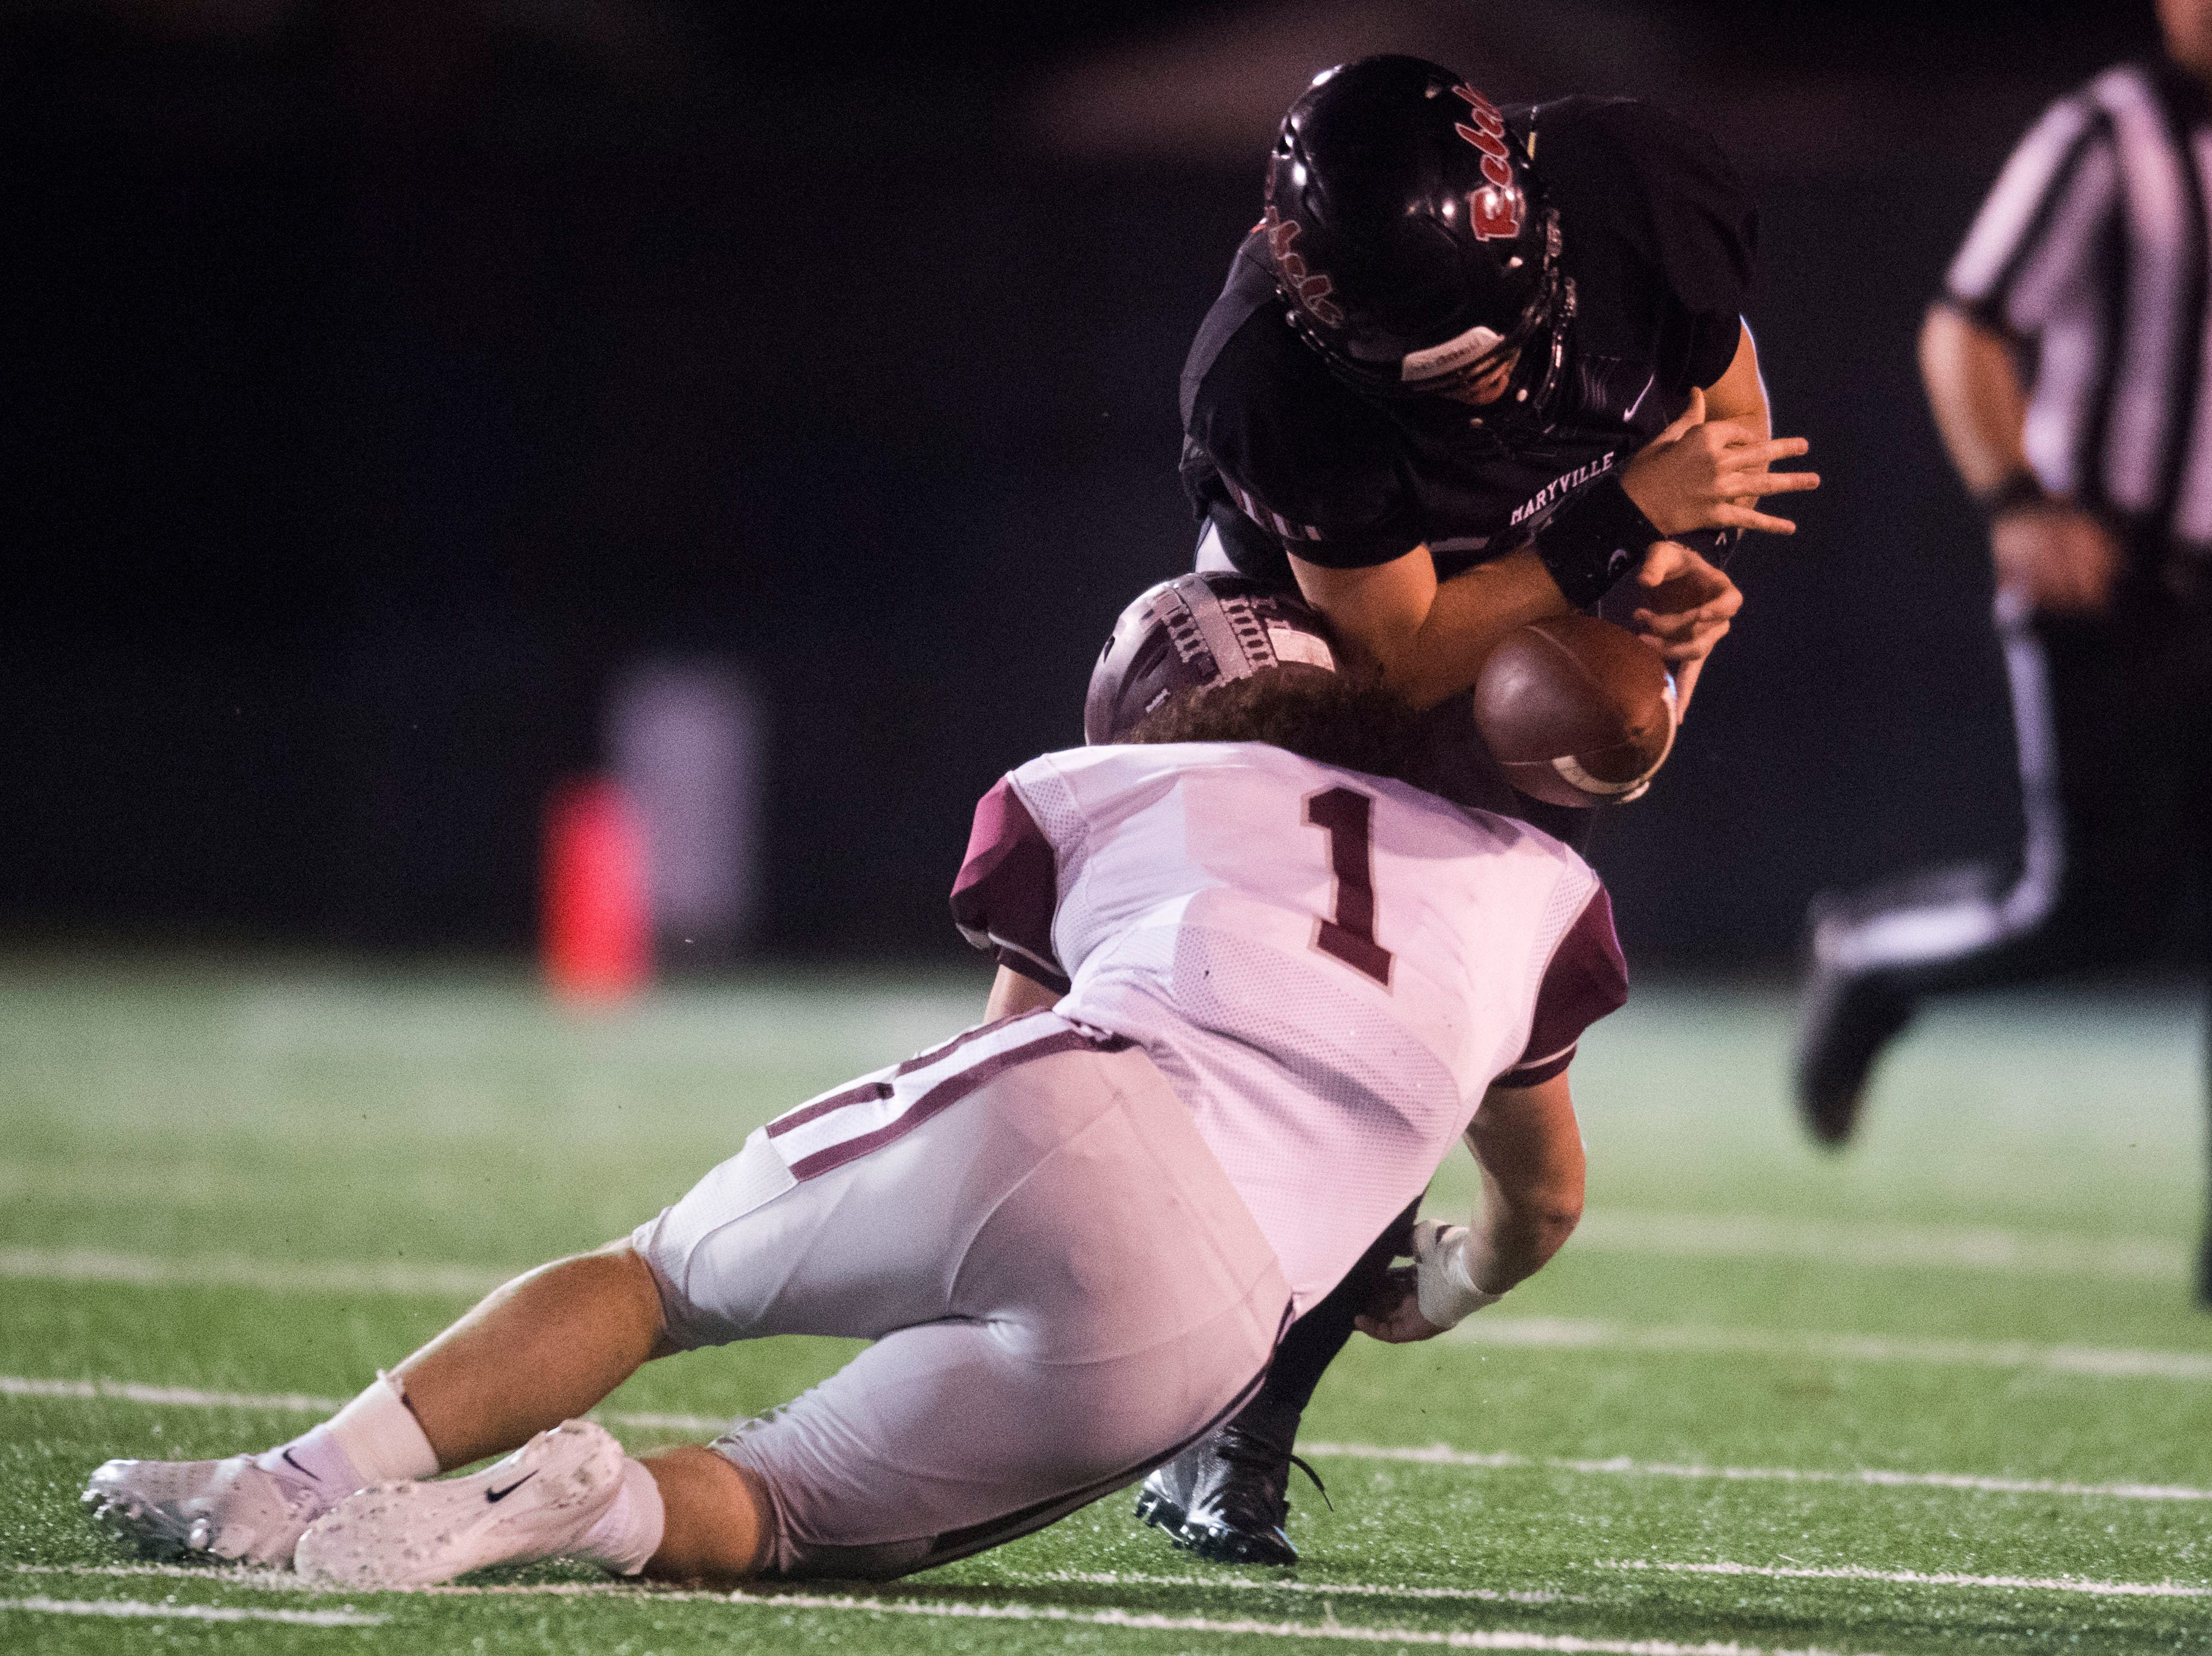 Maryville's Braden Carnes (10) is tackled by Bearden's Caleb Wilkins (1) during a first round playoff game between Maryville and Bearden at Maryville, Friday, Nov. 2, 2018. Maryville defeated Bearden 28-7.